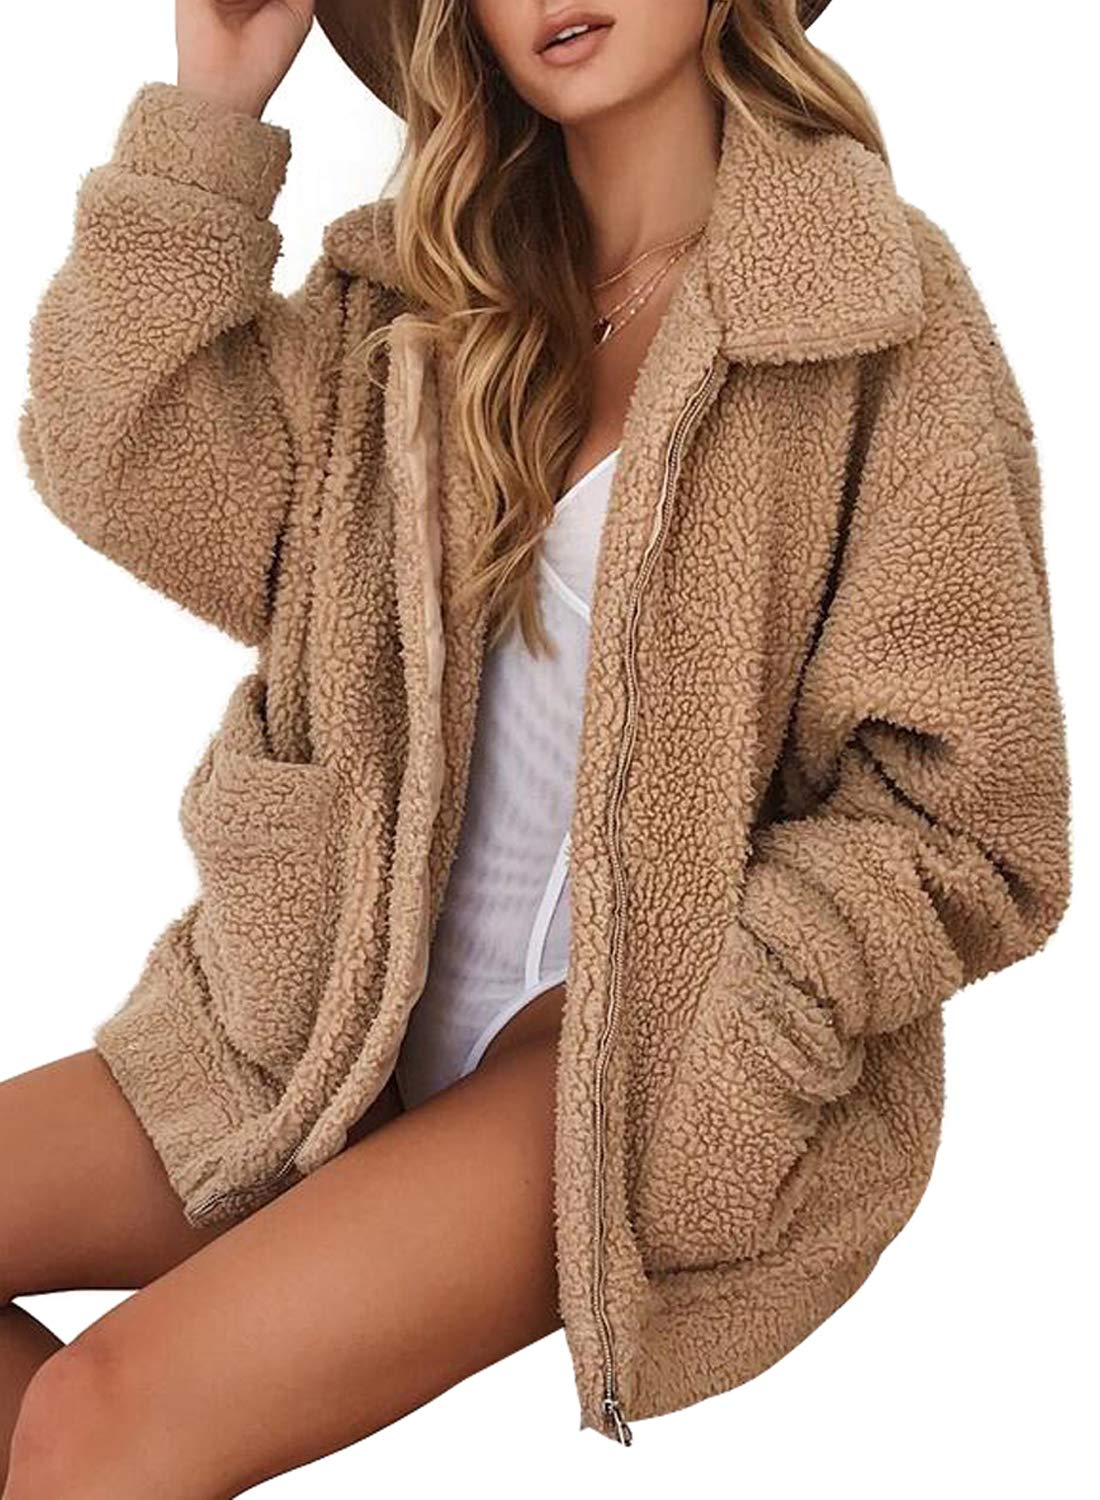 ROSKIKI Womens Winter Warm Chunky Fluffy Zip Up Coat Cozy Oversized Faux Shearling Bear Jacket with Pockets Outwear Khaki L